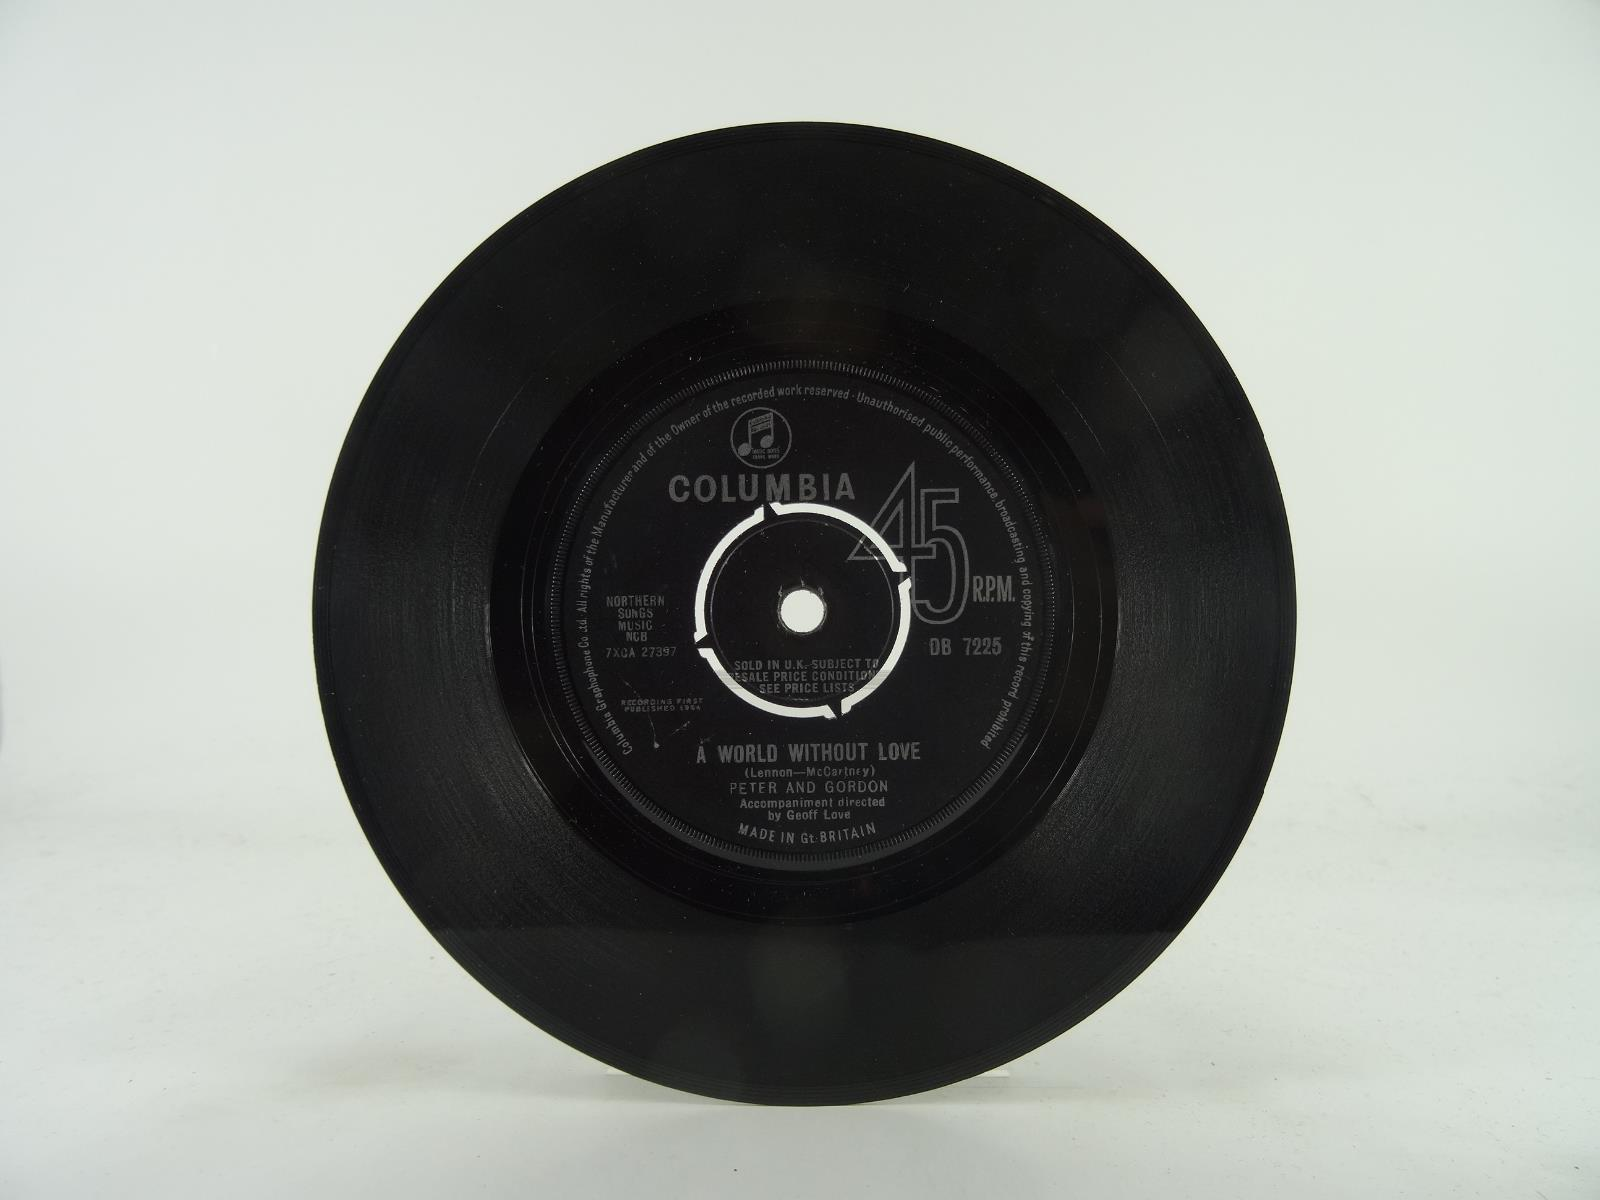 PETER-AND-GORDON-A-WORLD-WITHOUT-LOVE-71-2-VG-2-Track-7-034-Single-Plain-Pap